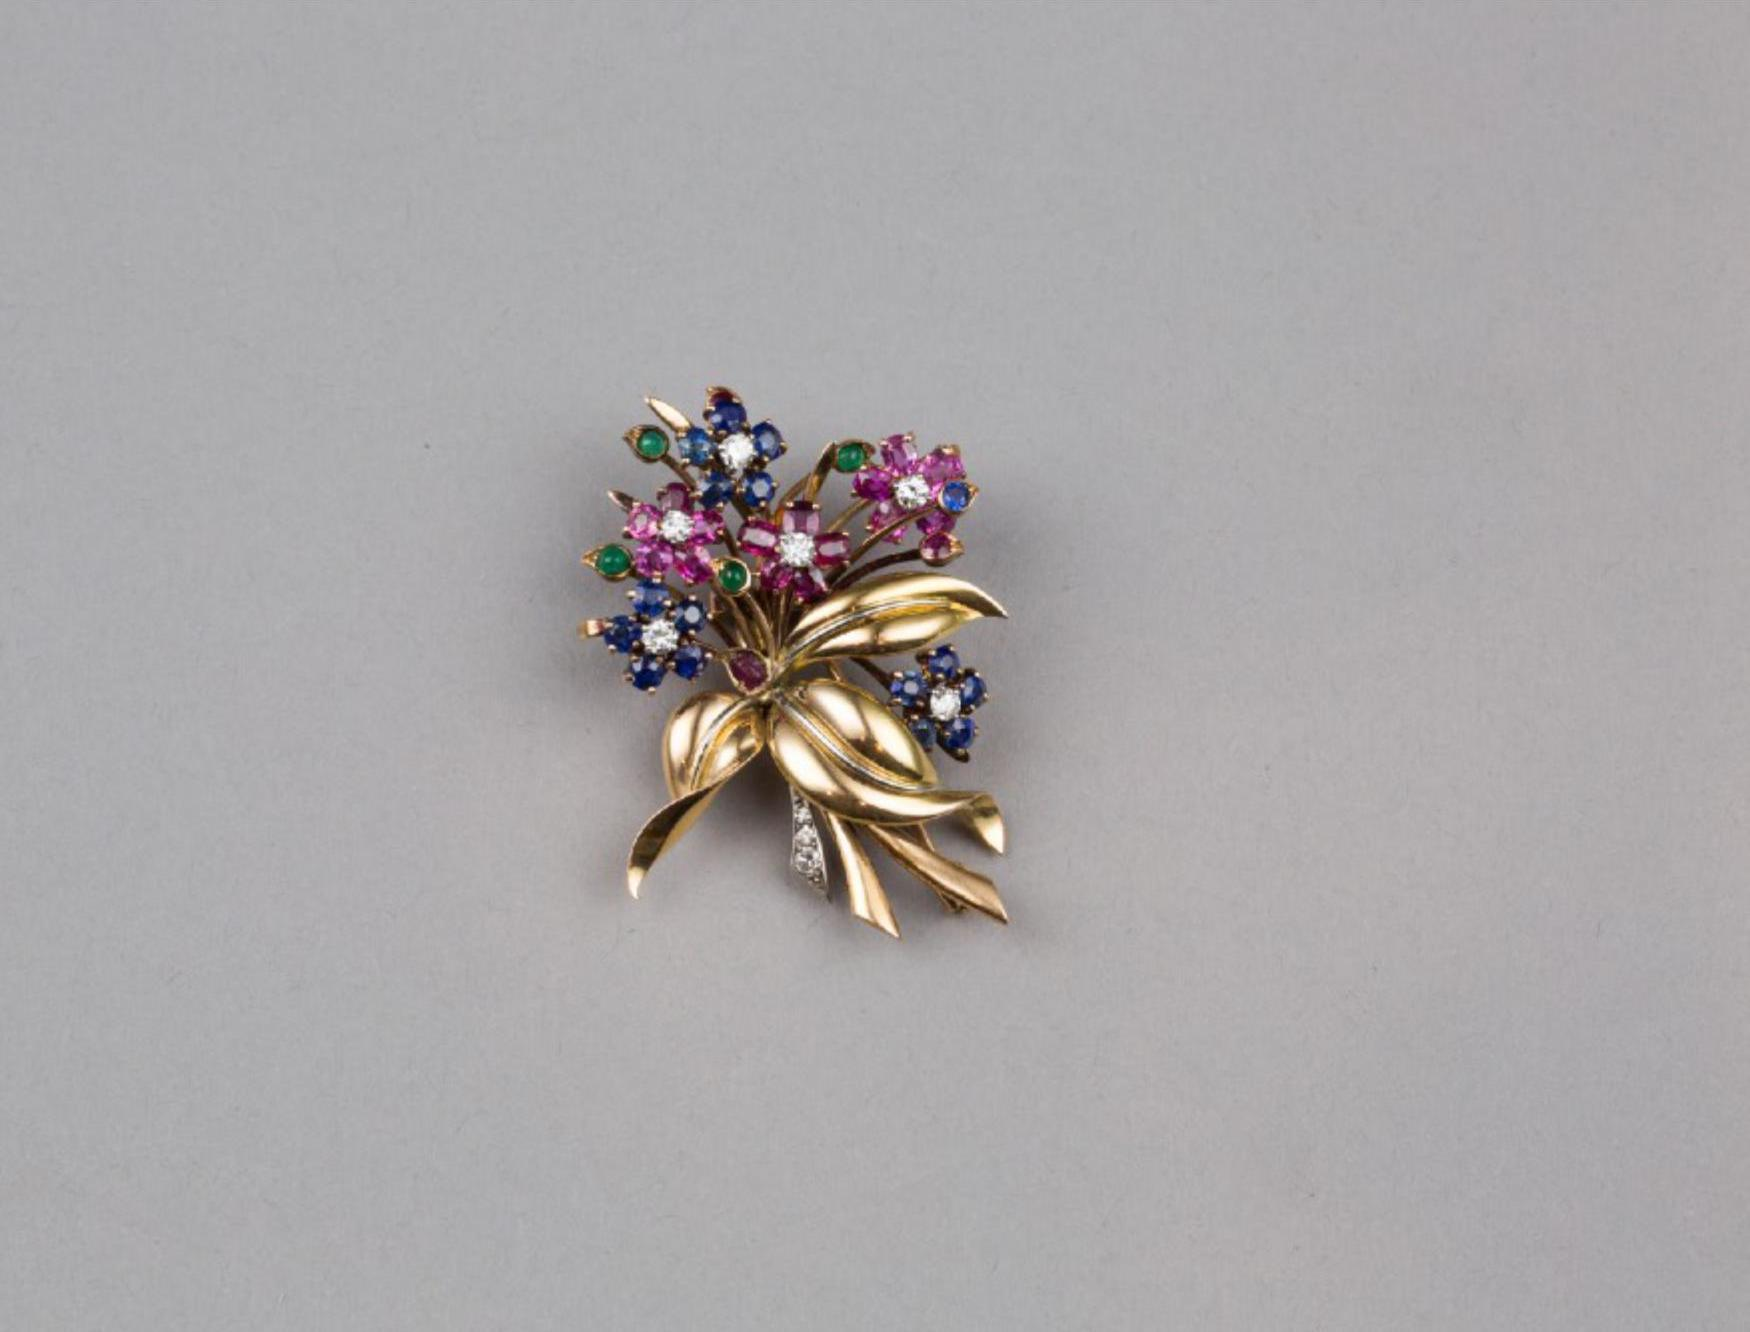 Lot 43 - A 18K Gold Emerald Sapphire Ruby and Diamond Brooch